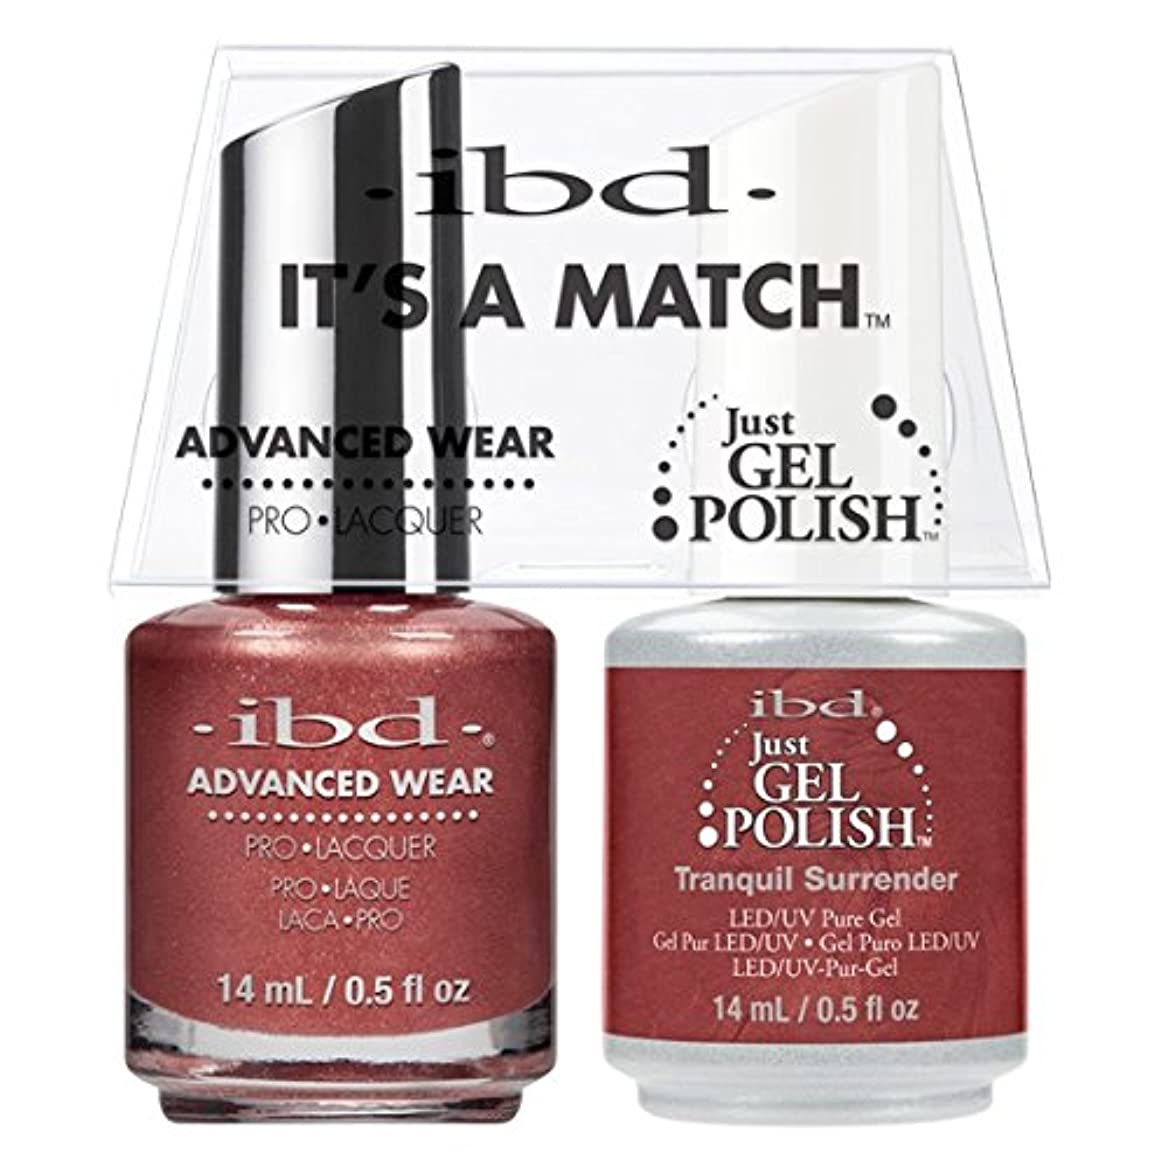 ibd - It's A Match -Duo Pack- Tranquil Surrender - 14 mL / 0.5 oz Each